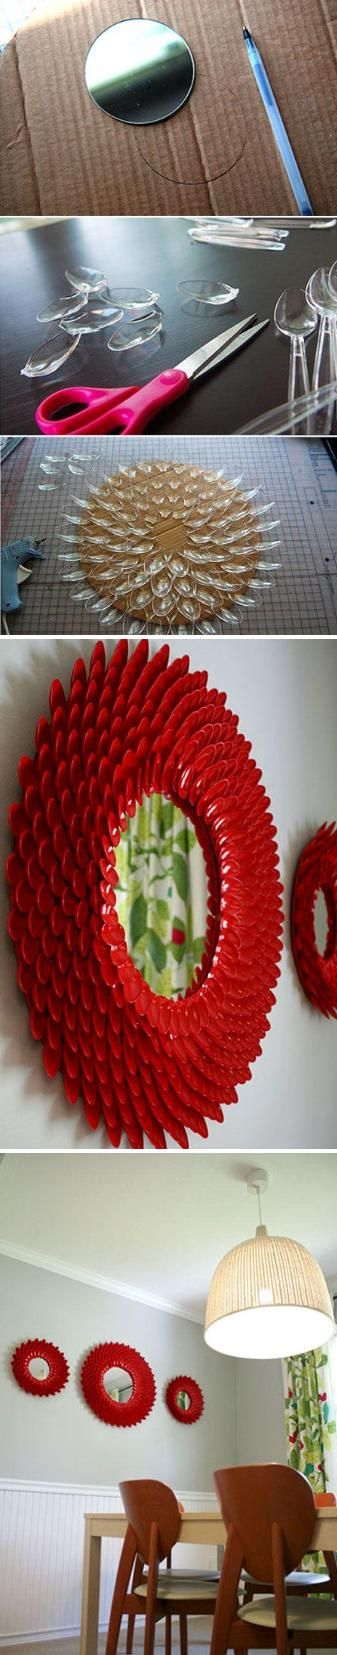 How to make a stunning mirror from cheap disposable plastic spoons